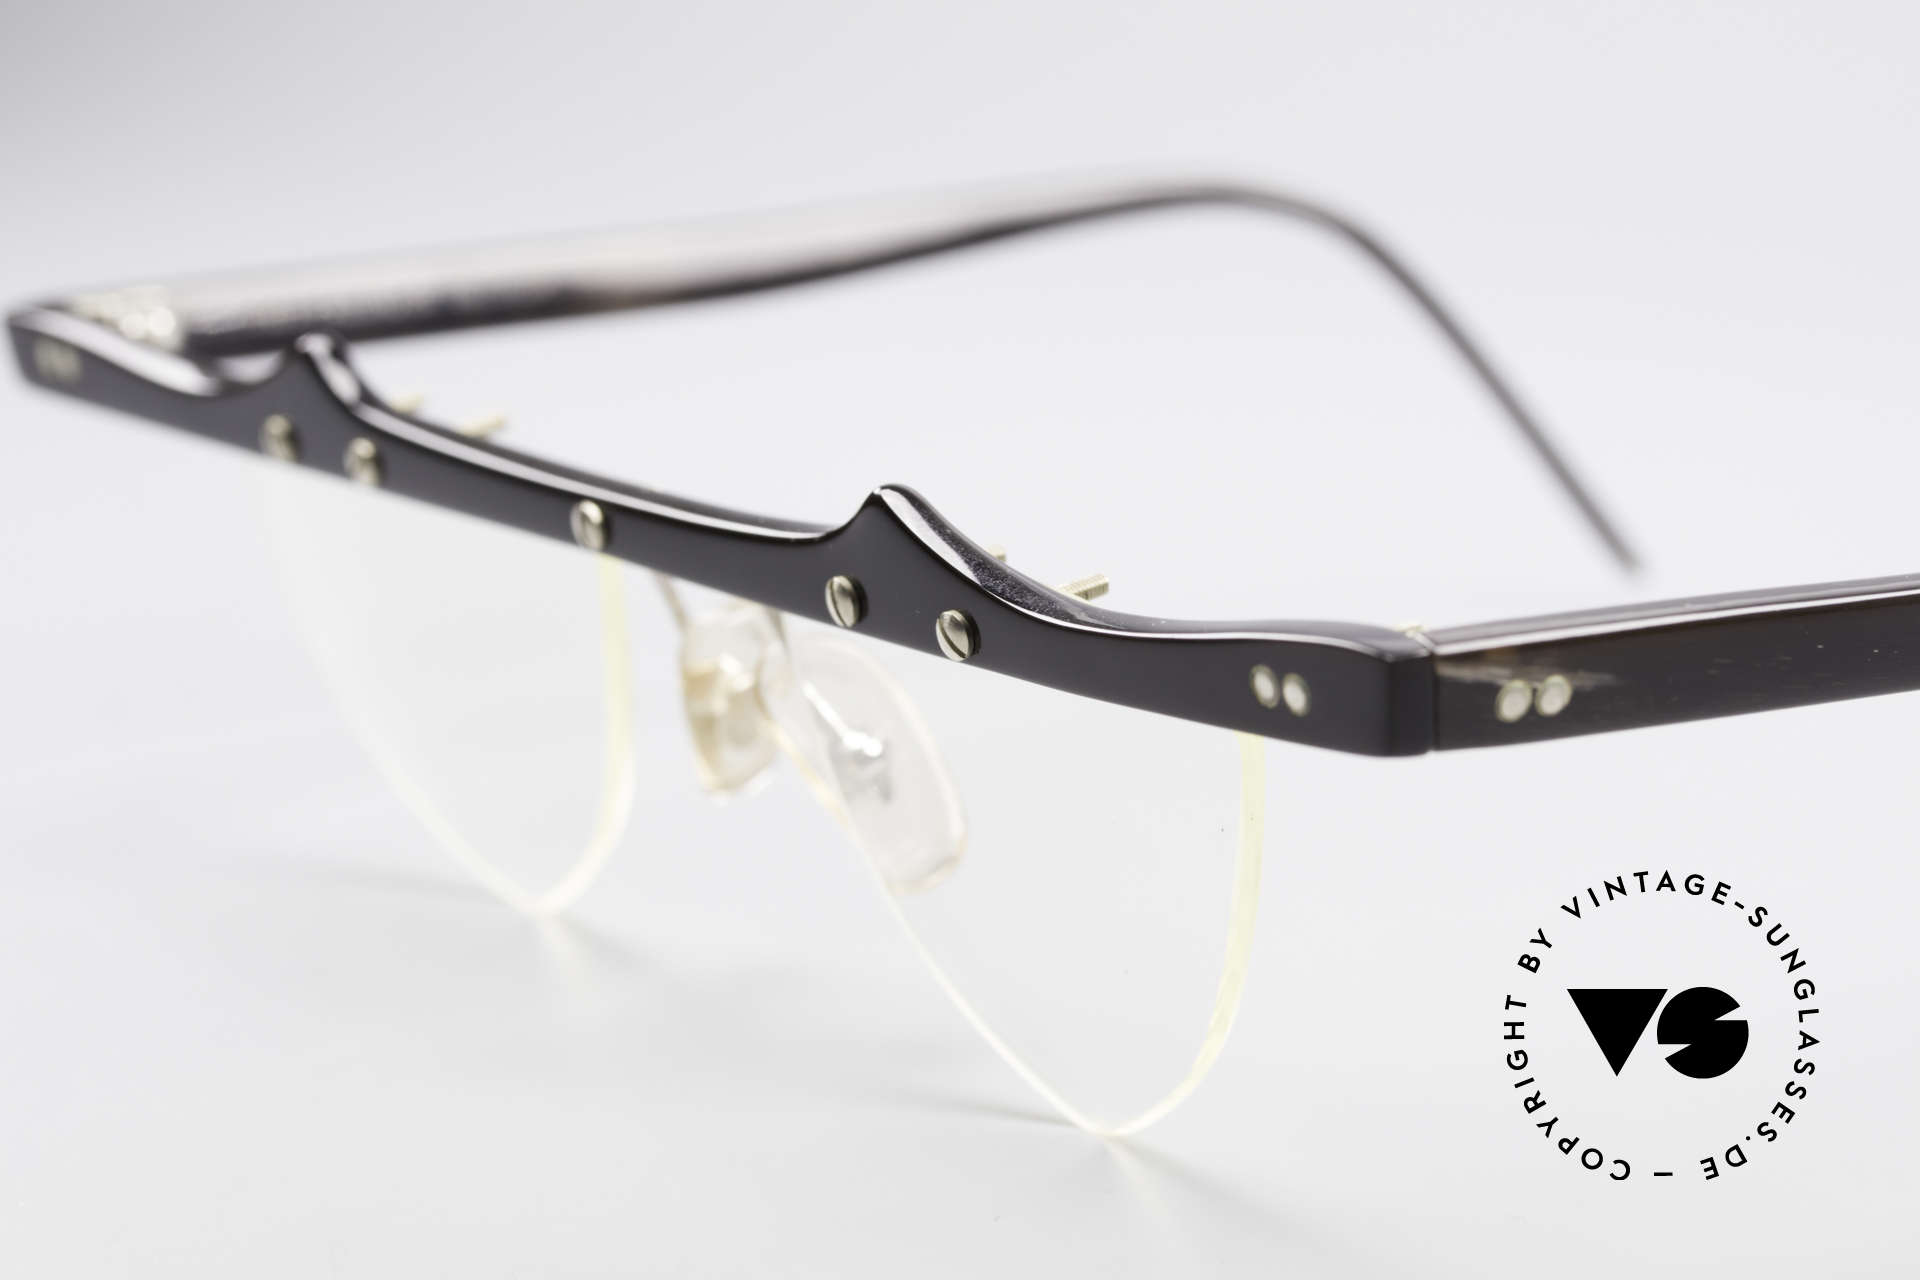 Theo Belgium Eta Heart Shaped Frame Horn XL, this XL model was made with heart-shaped demo lenses, Made for Women